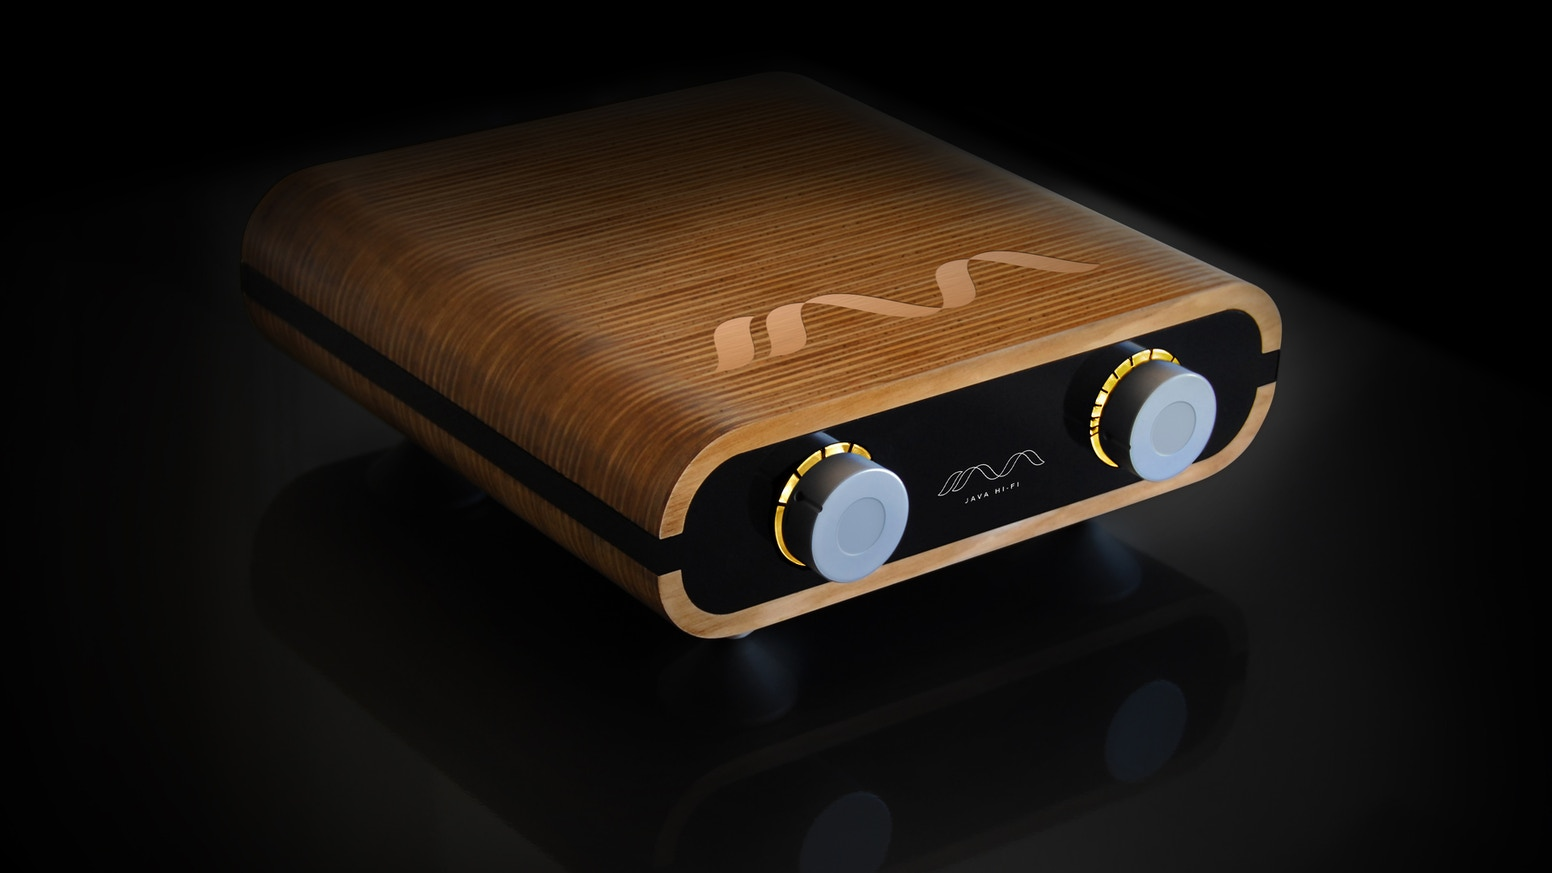 The JAVA is an audiophile-quality, passive pre-amp utilising LDR (light dependent resistor) technology in a unique circuit design.